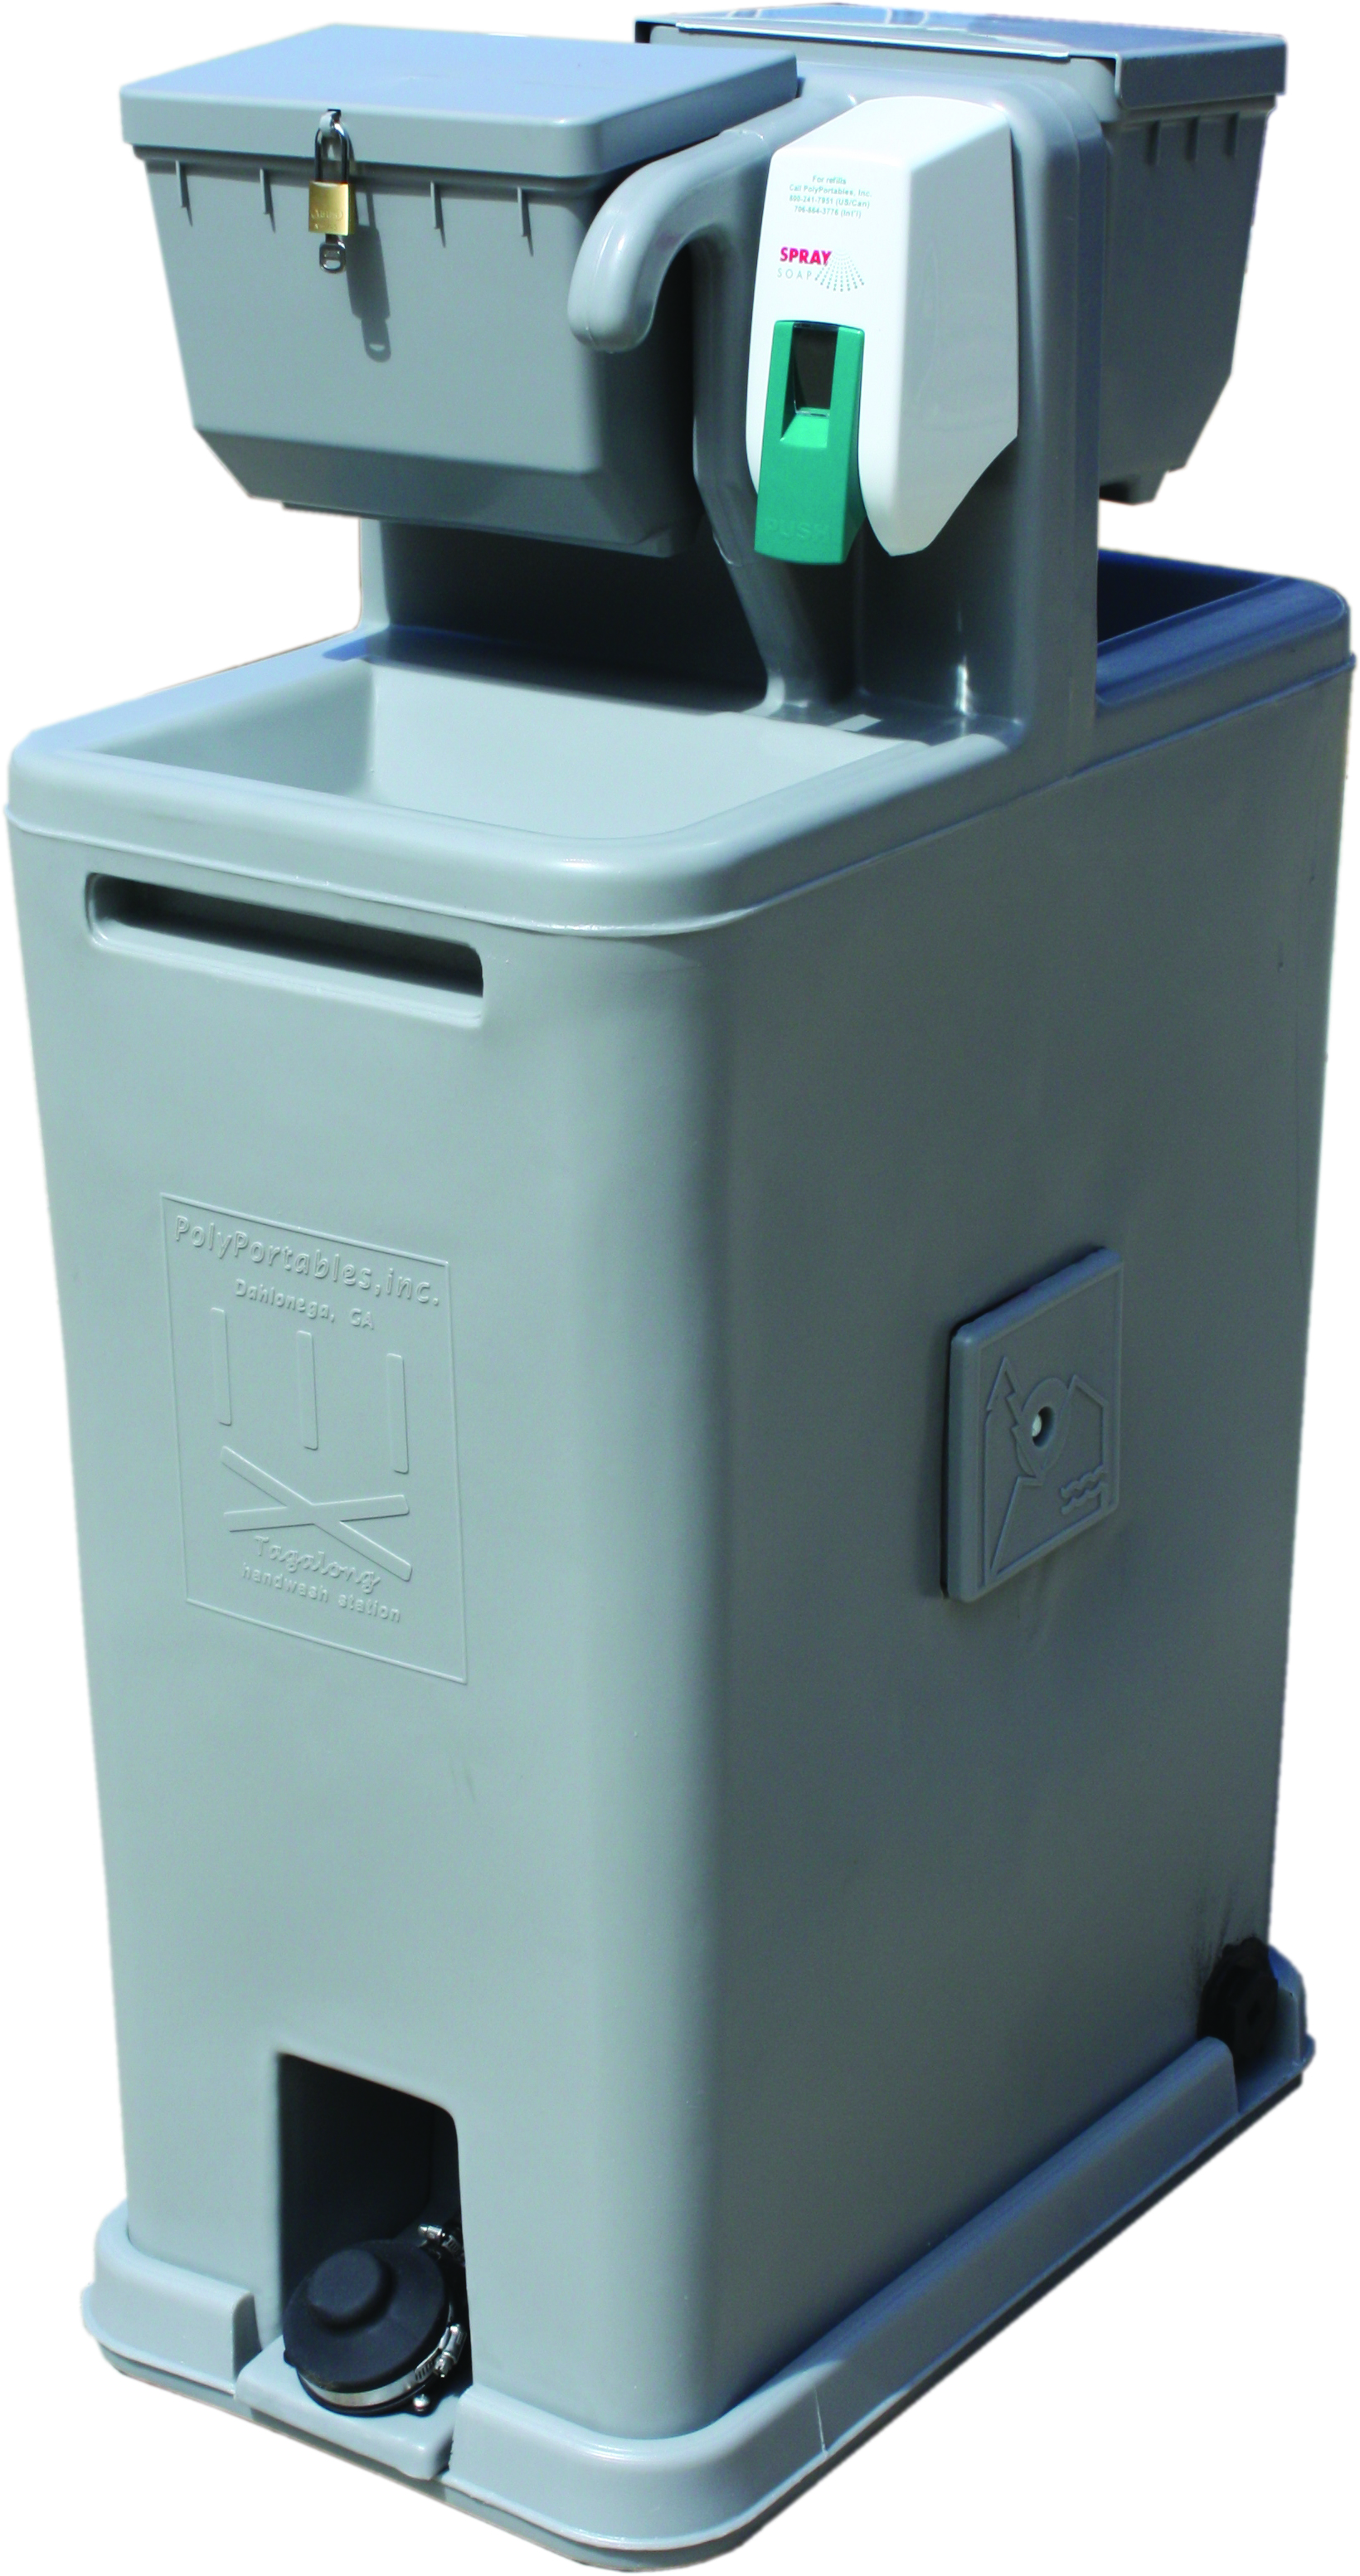 PolyPortable Sink - Portable Hand Washing Station - Tag 2